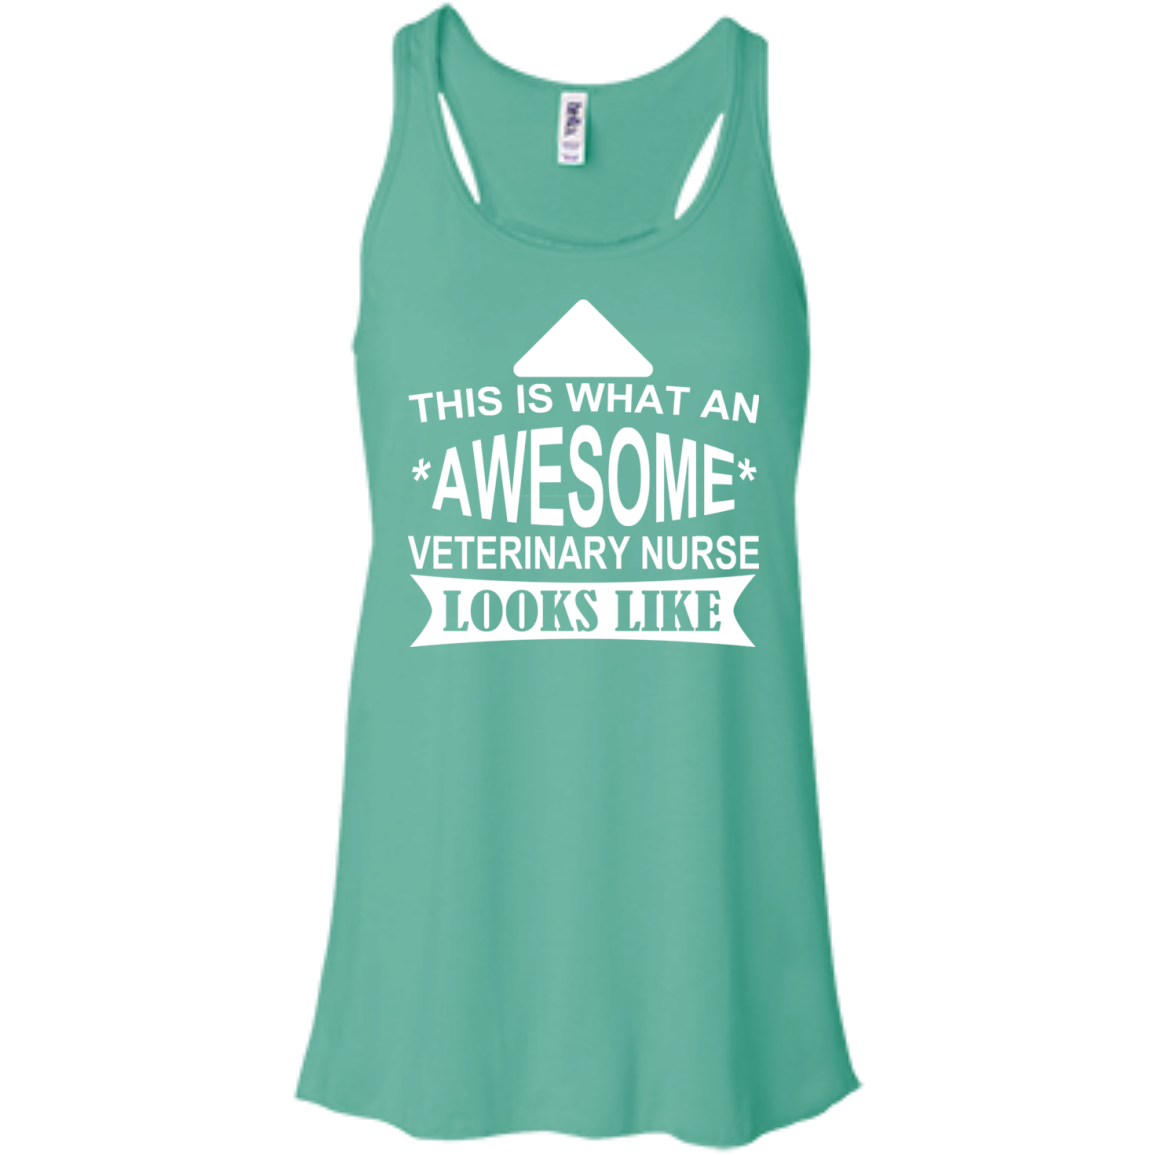 This Is What An Awesome Veterinary Nurse Looks Like Flowy Racerback Tanks